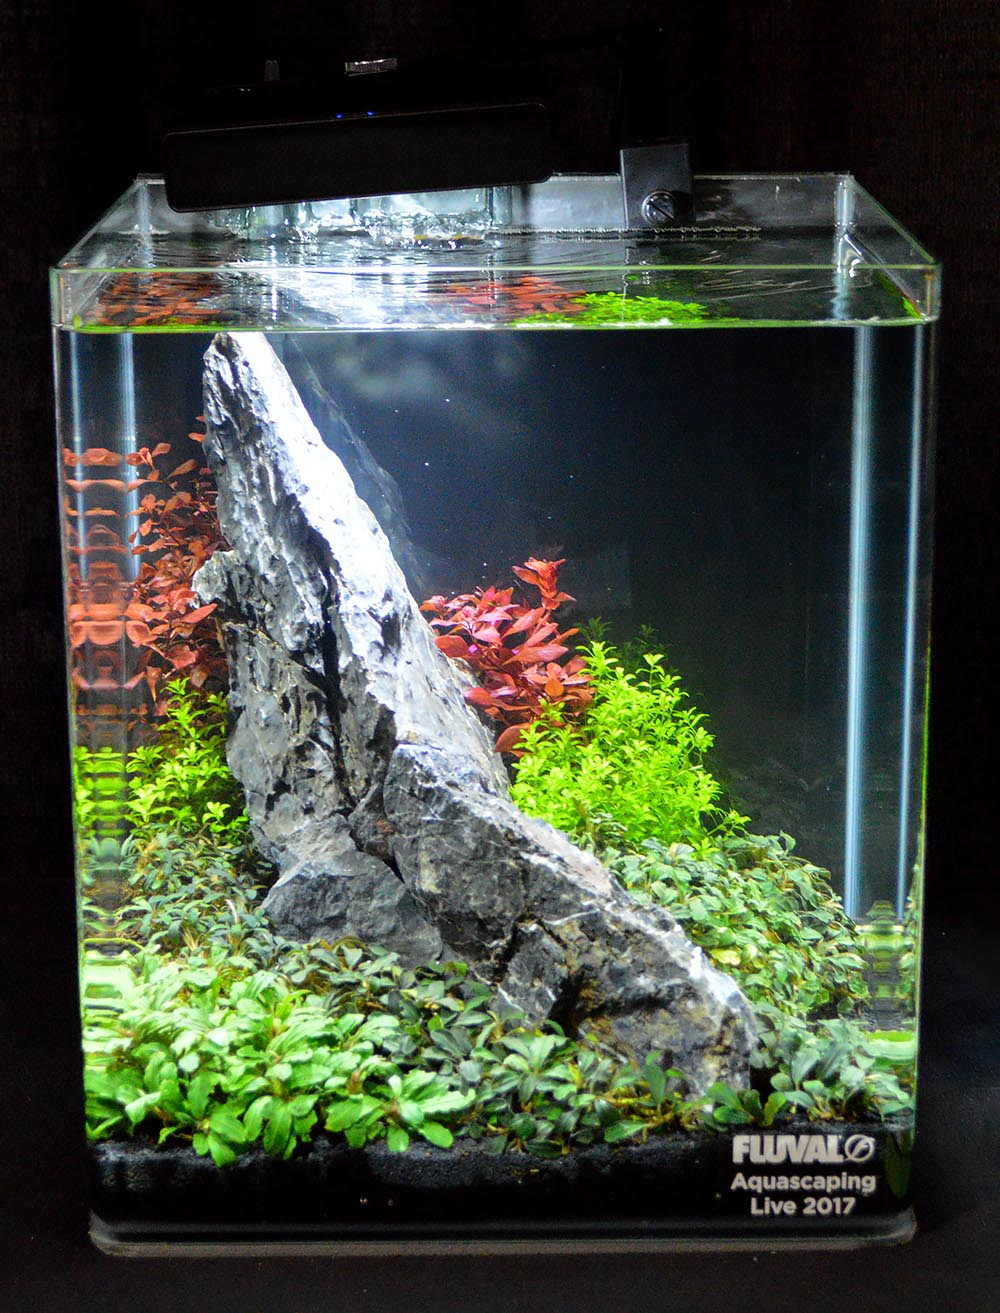 Hunter Koerner's 6th place aquascape seen from a different perspective.